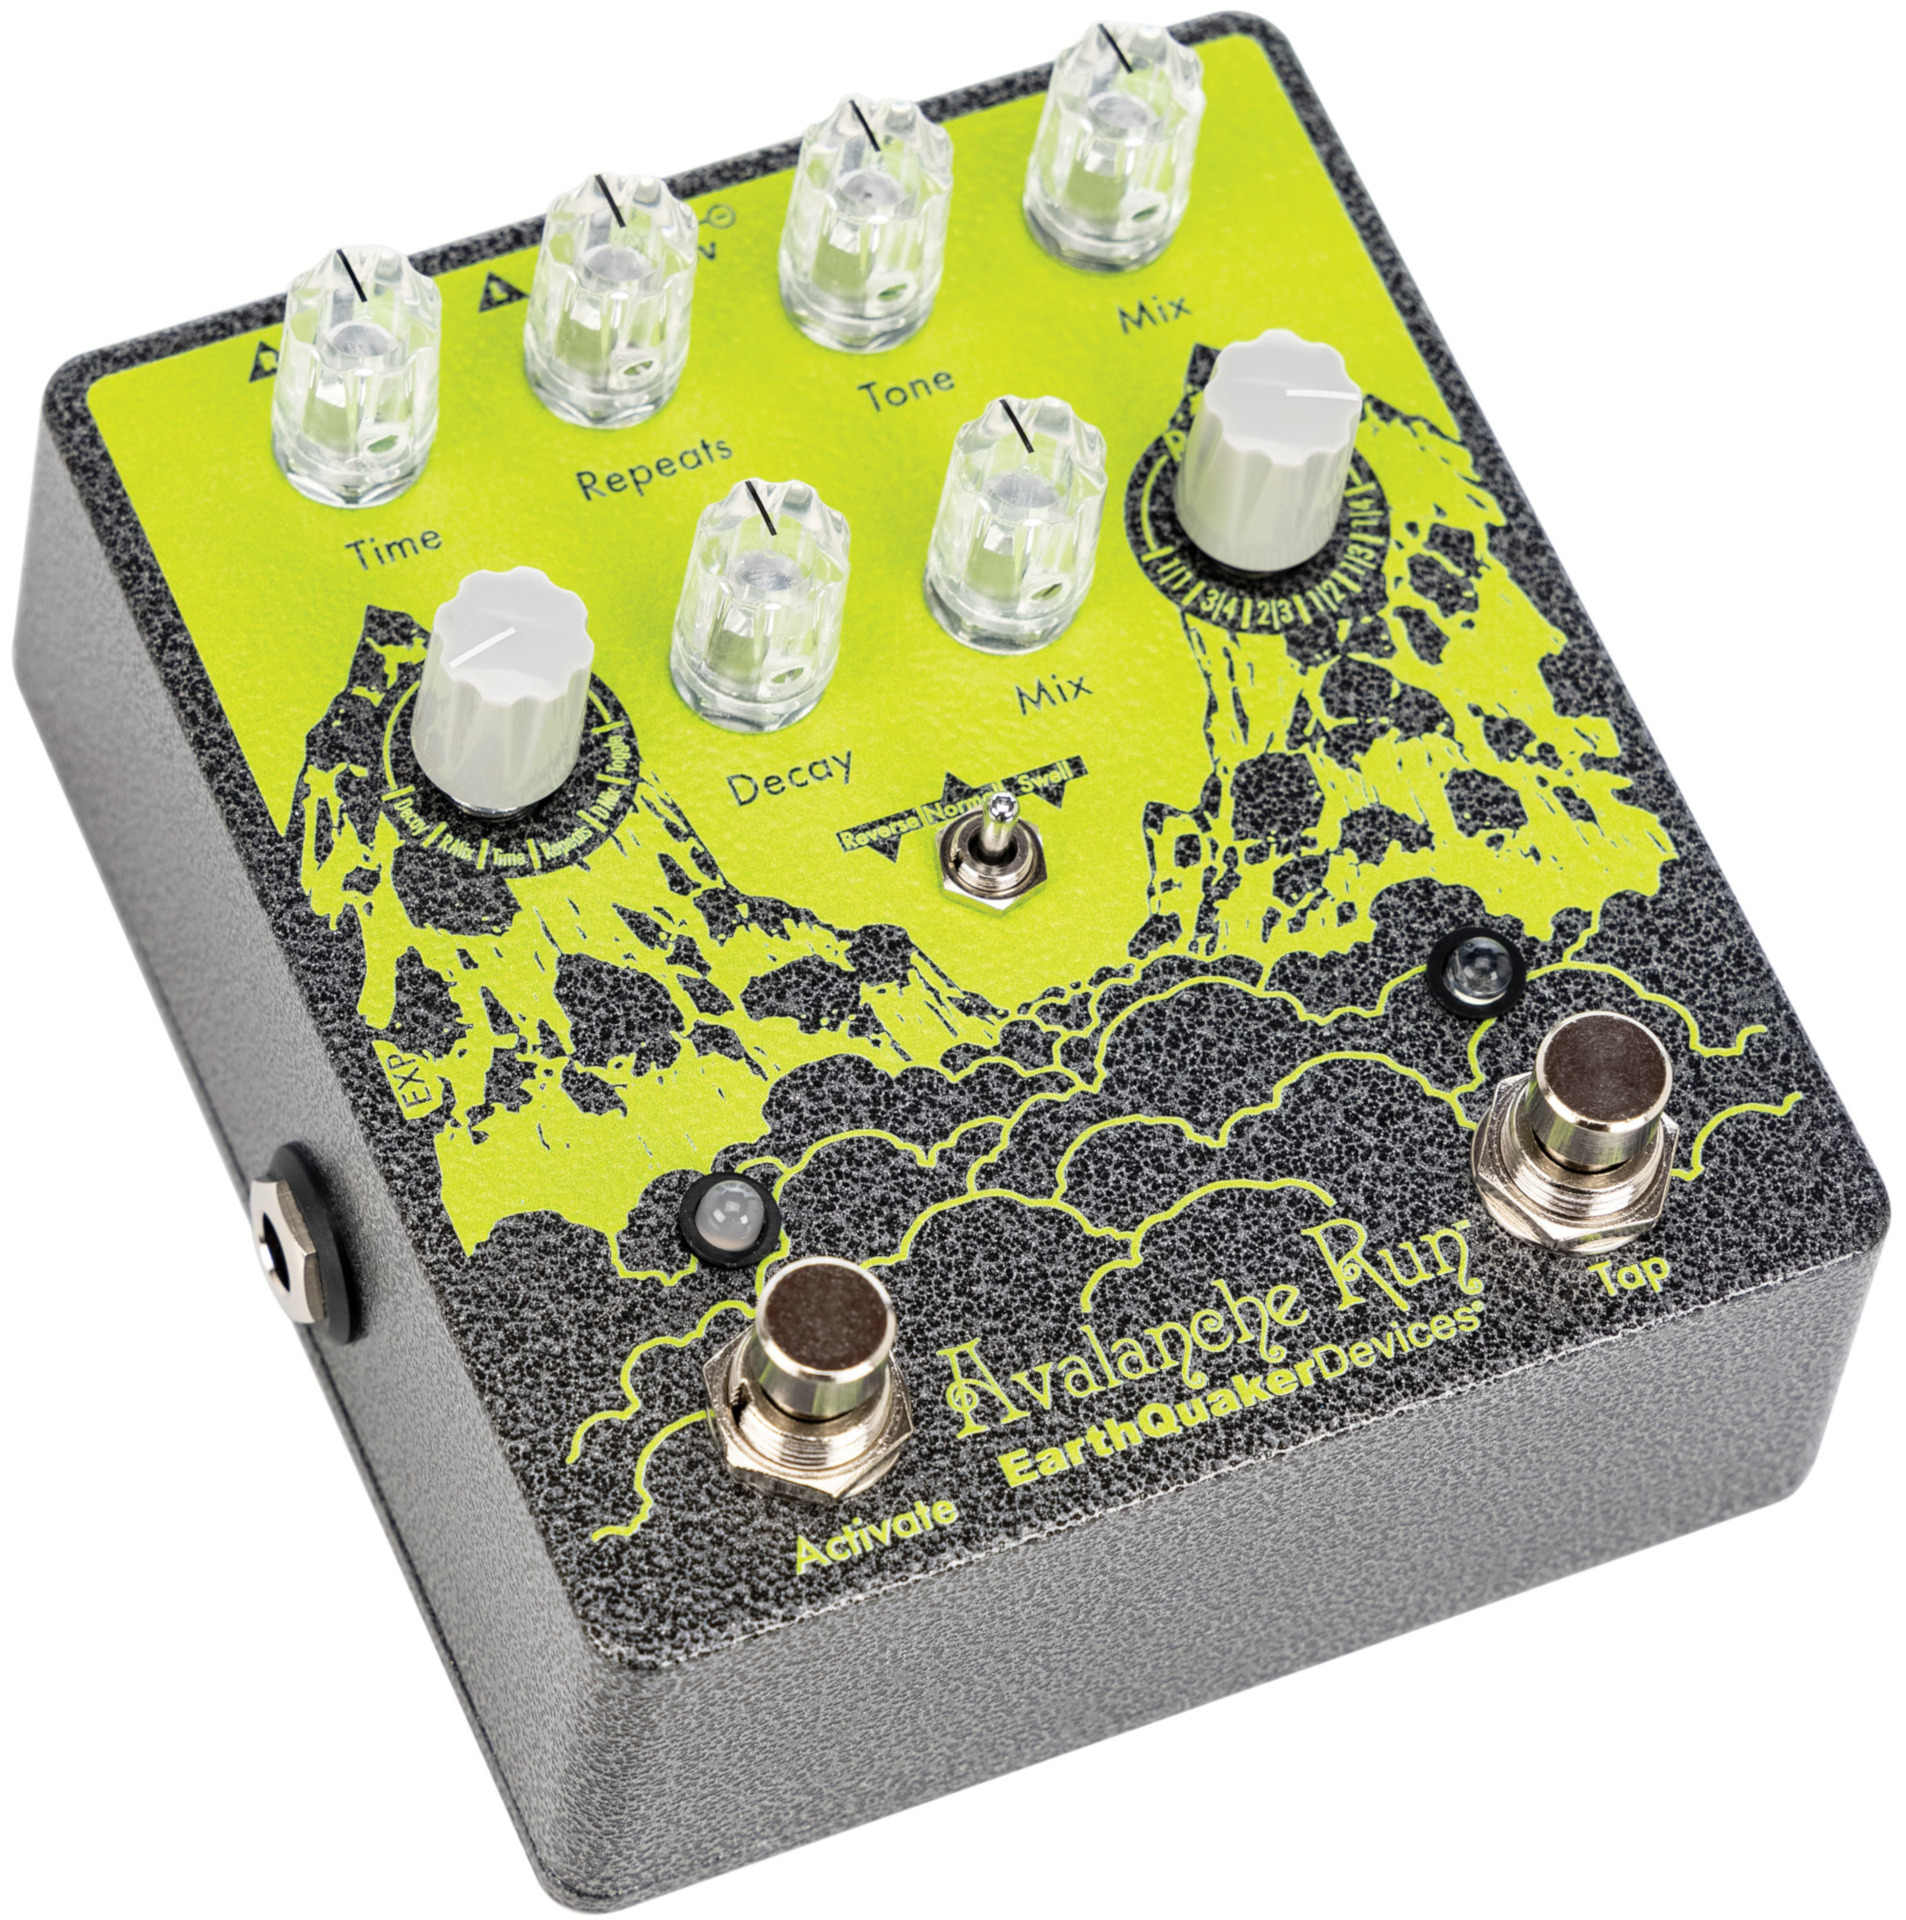 EarthQuaker Devices Avalanche Run V2 – Stereo Delay / Reverb – Wersja Limitowana